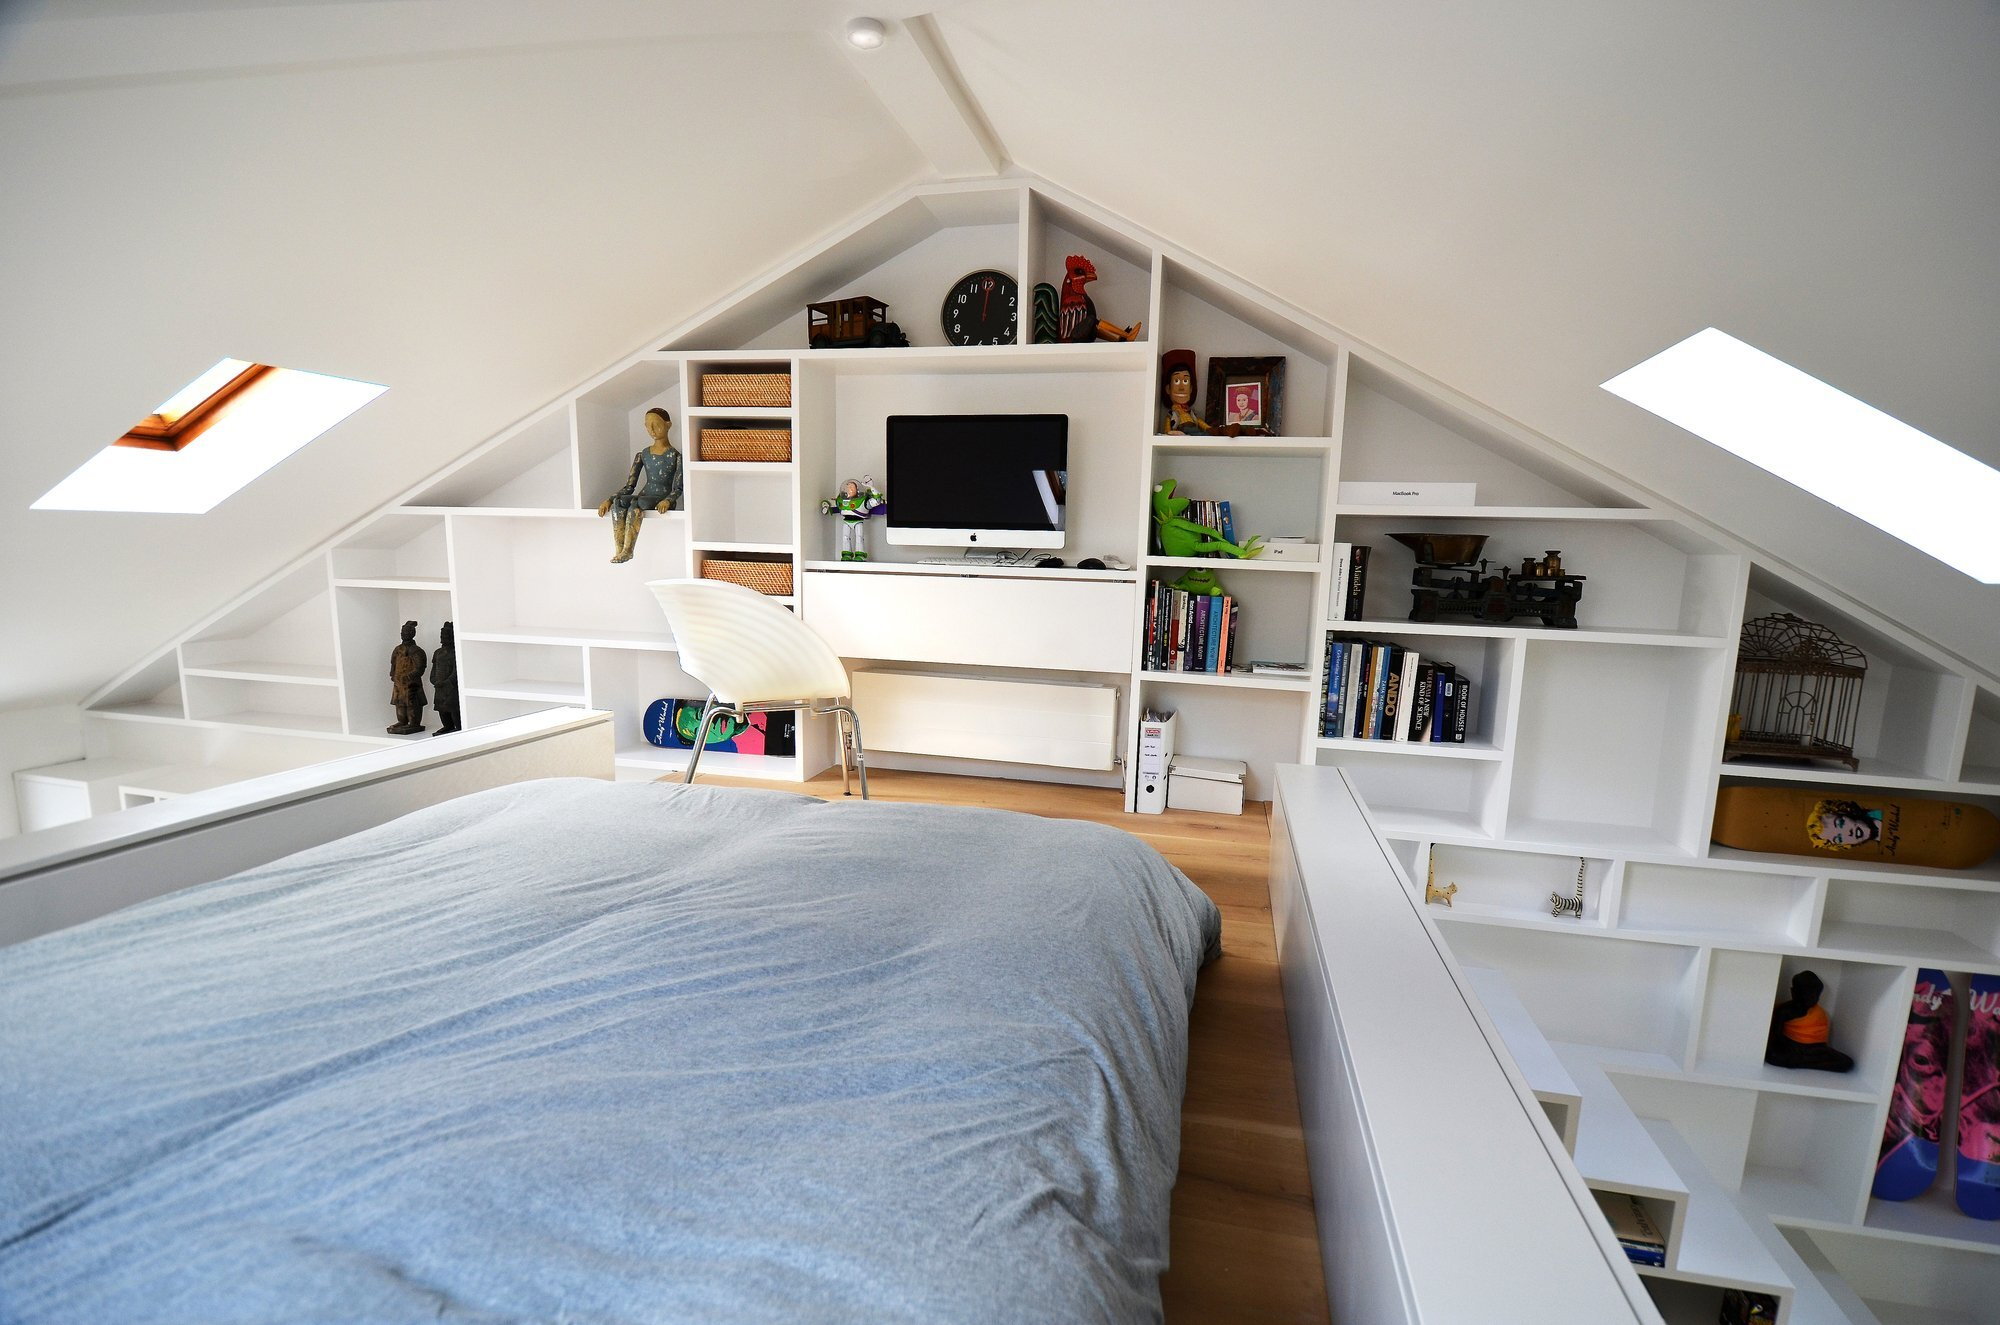 Loft Space   Craft Design   London   Camden   Tiny Apartment   Bedroom    Humble